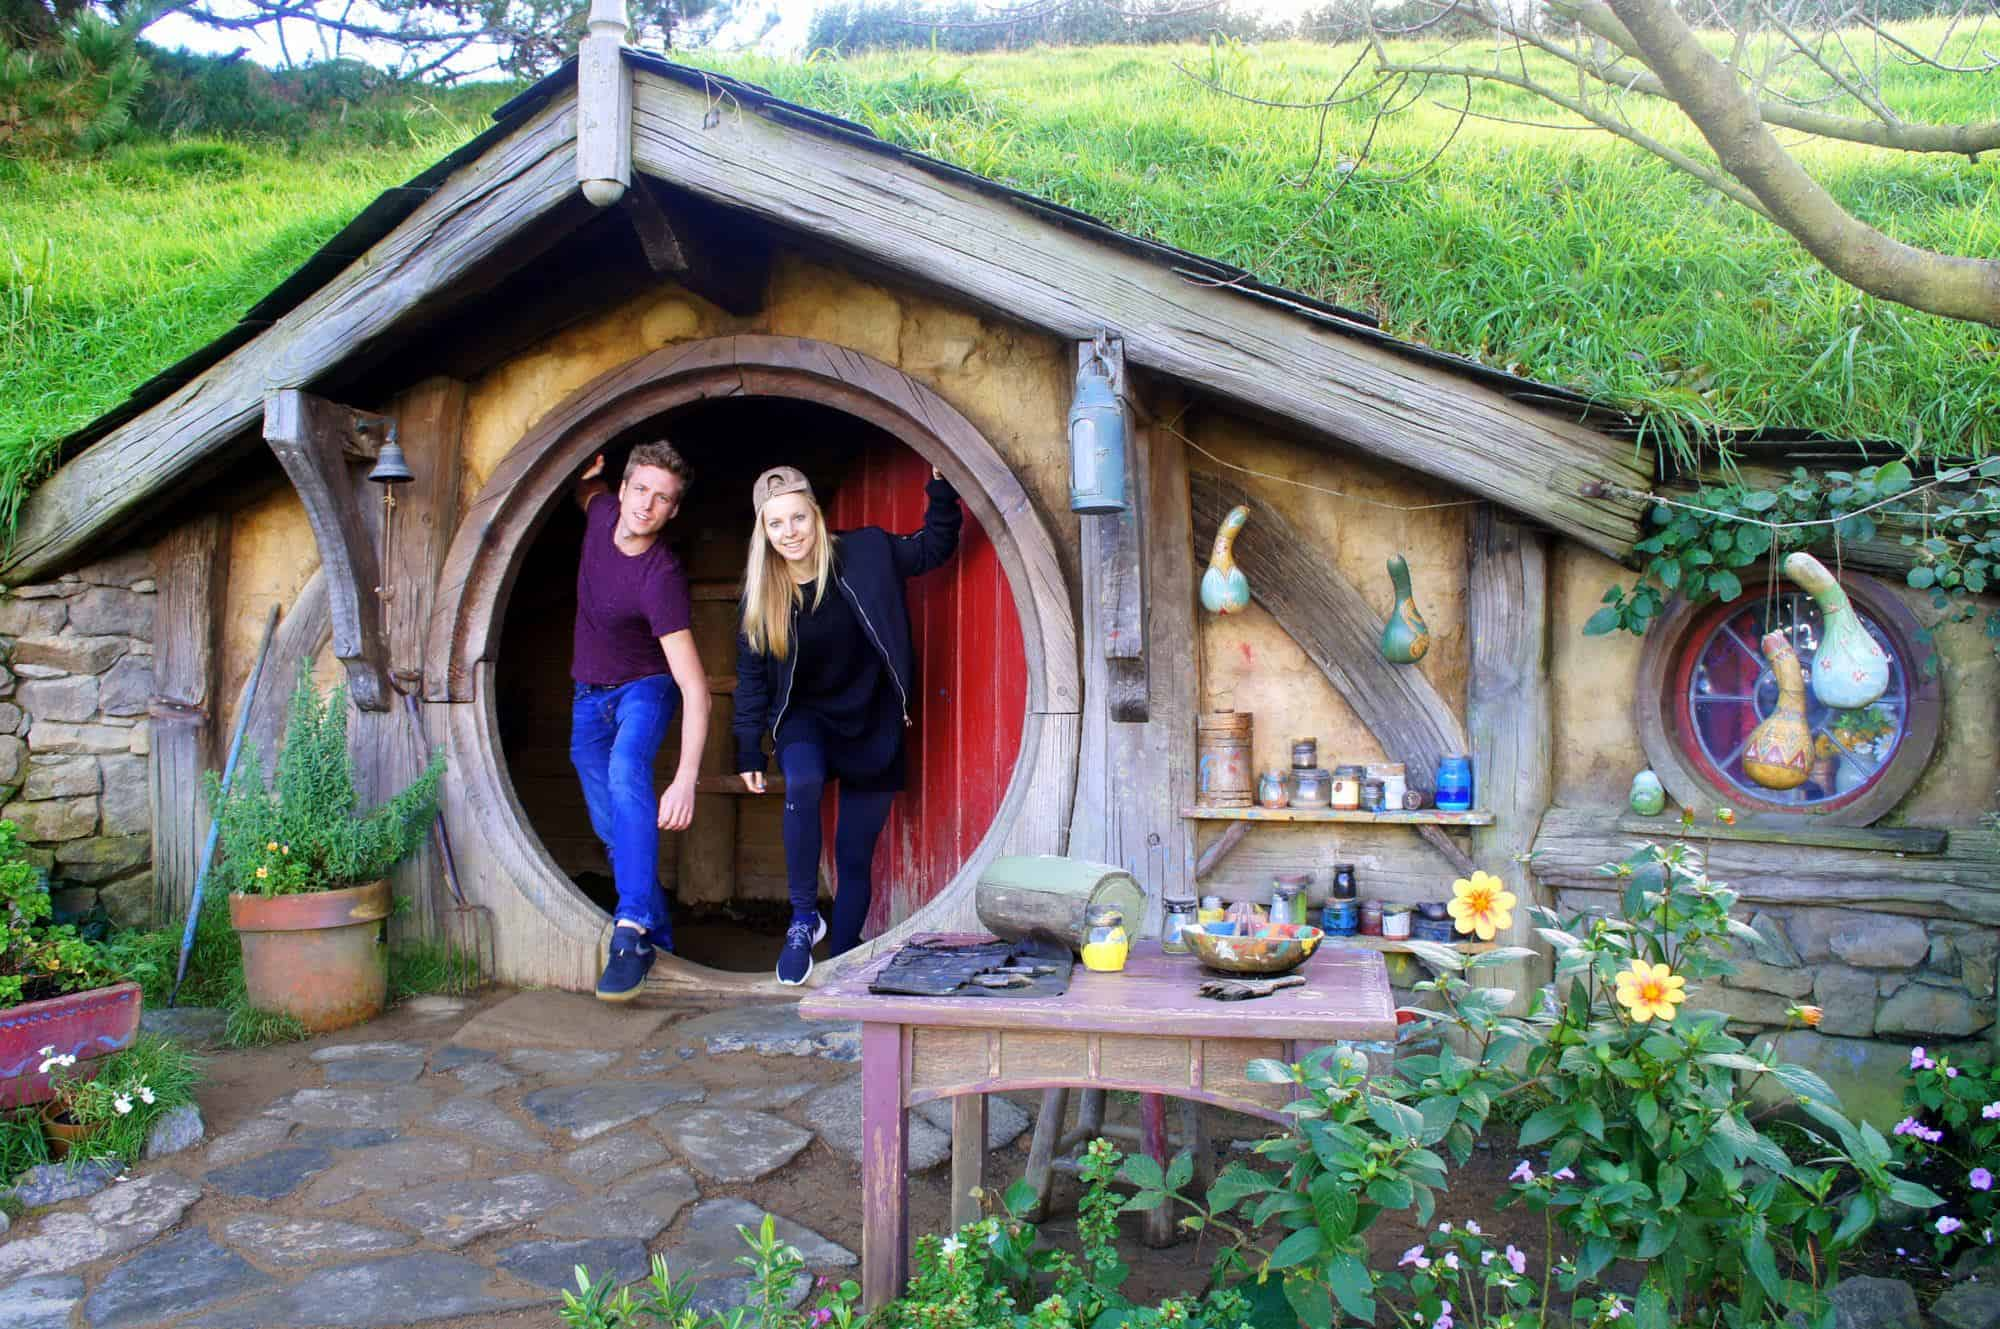 Visiting-the-Hobbiton-New-Zealand